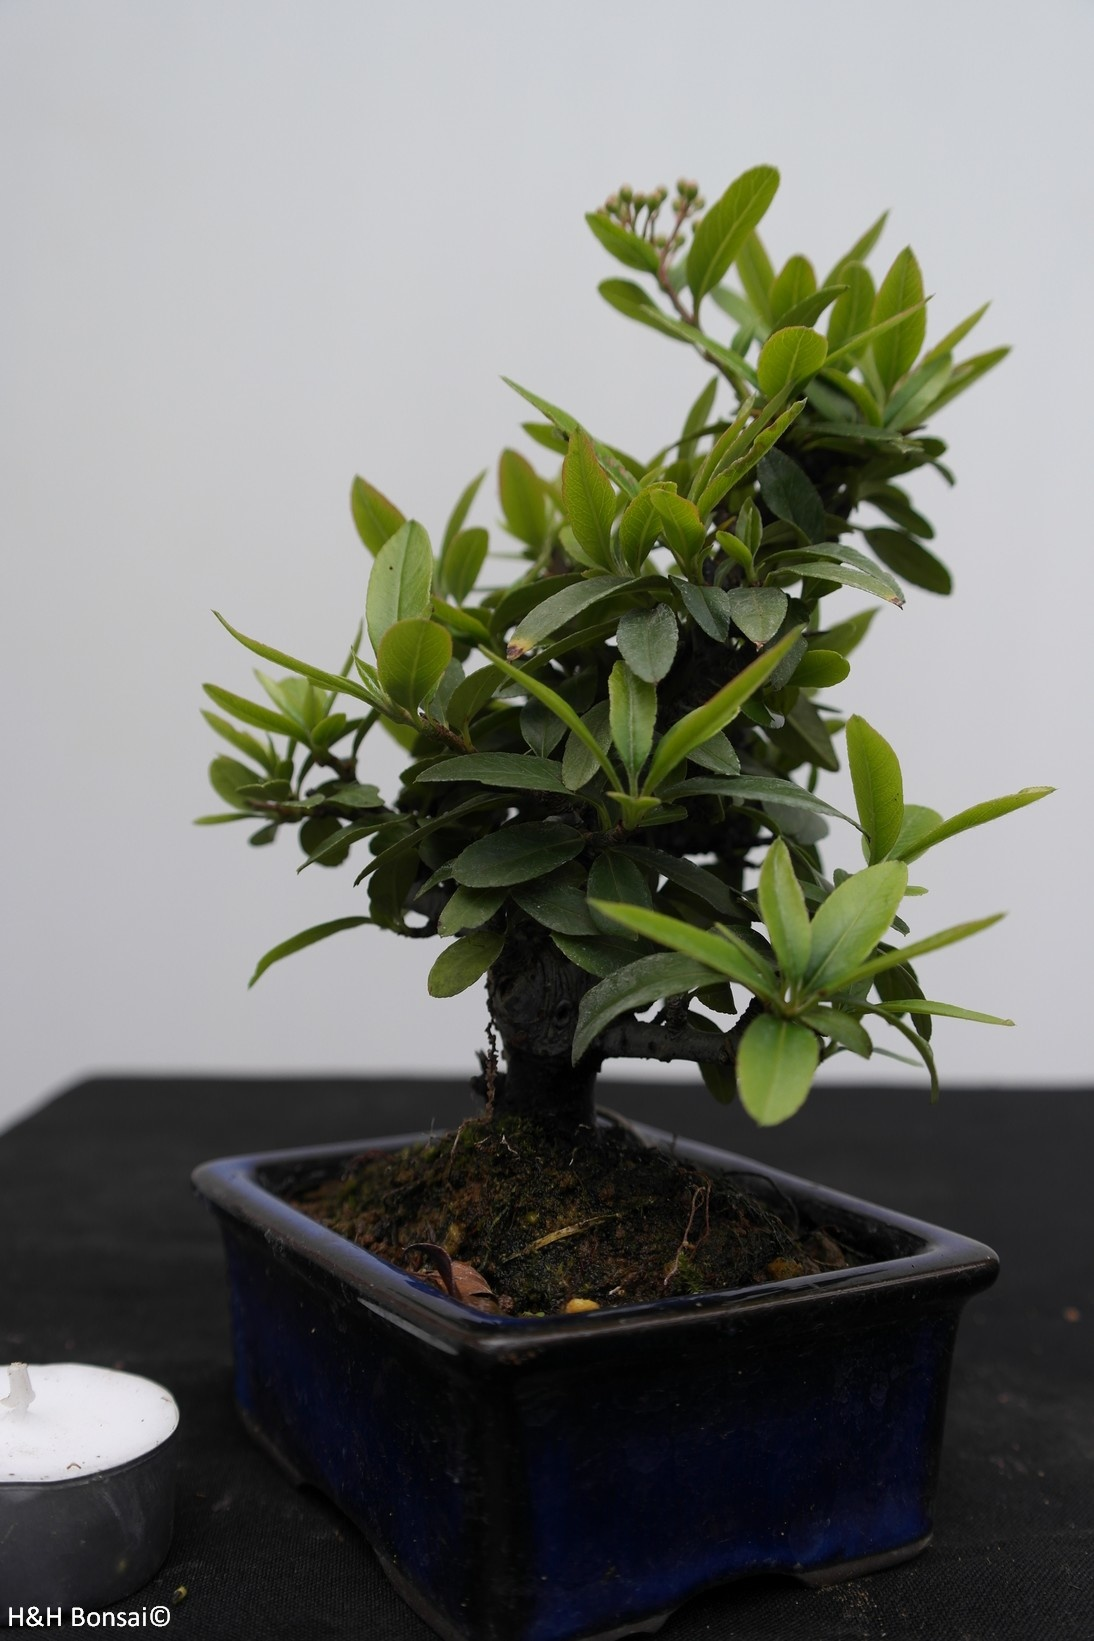 Bonsai Shohin Firethorn, Pyracantha, no. 7784